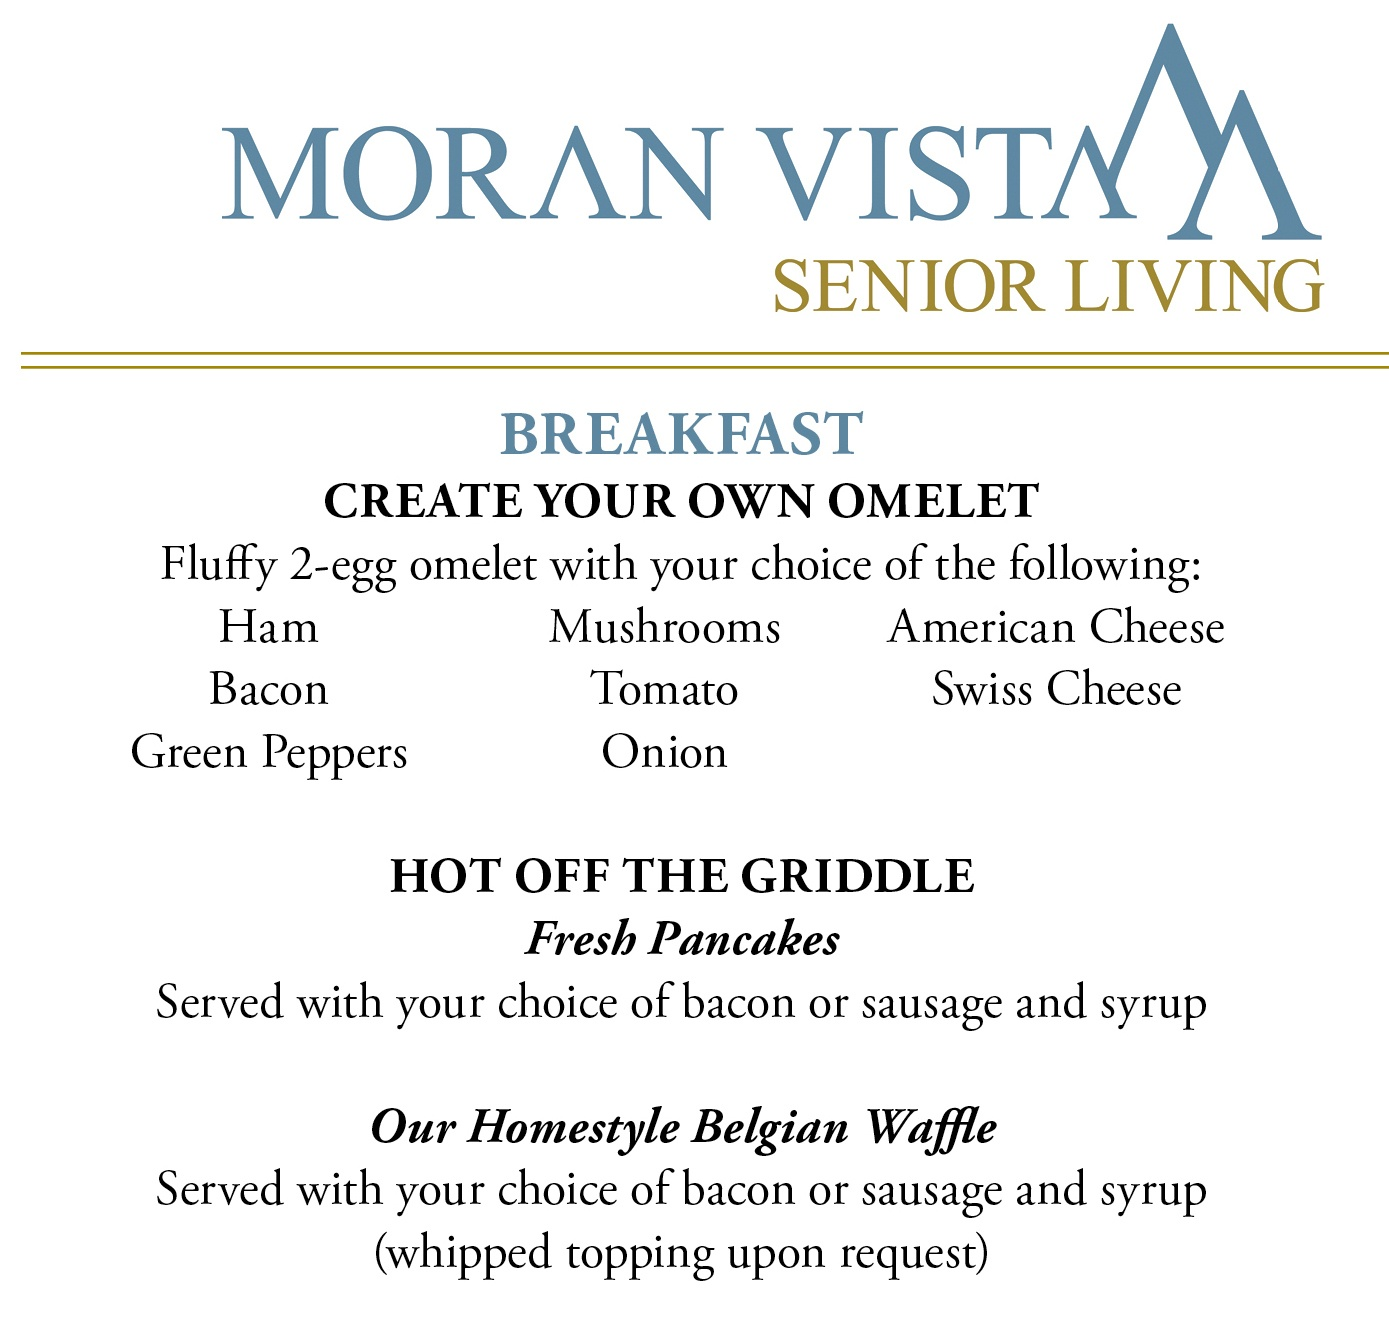 Sample Menu at Moran Vista